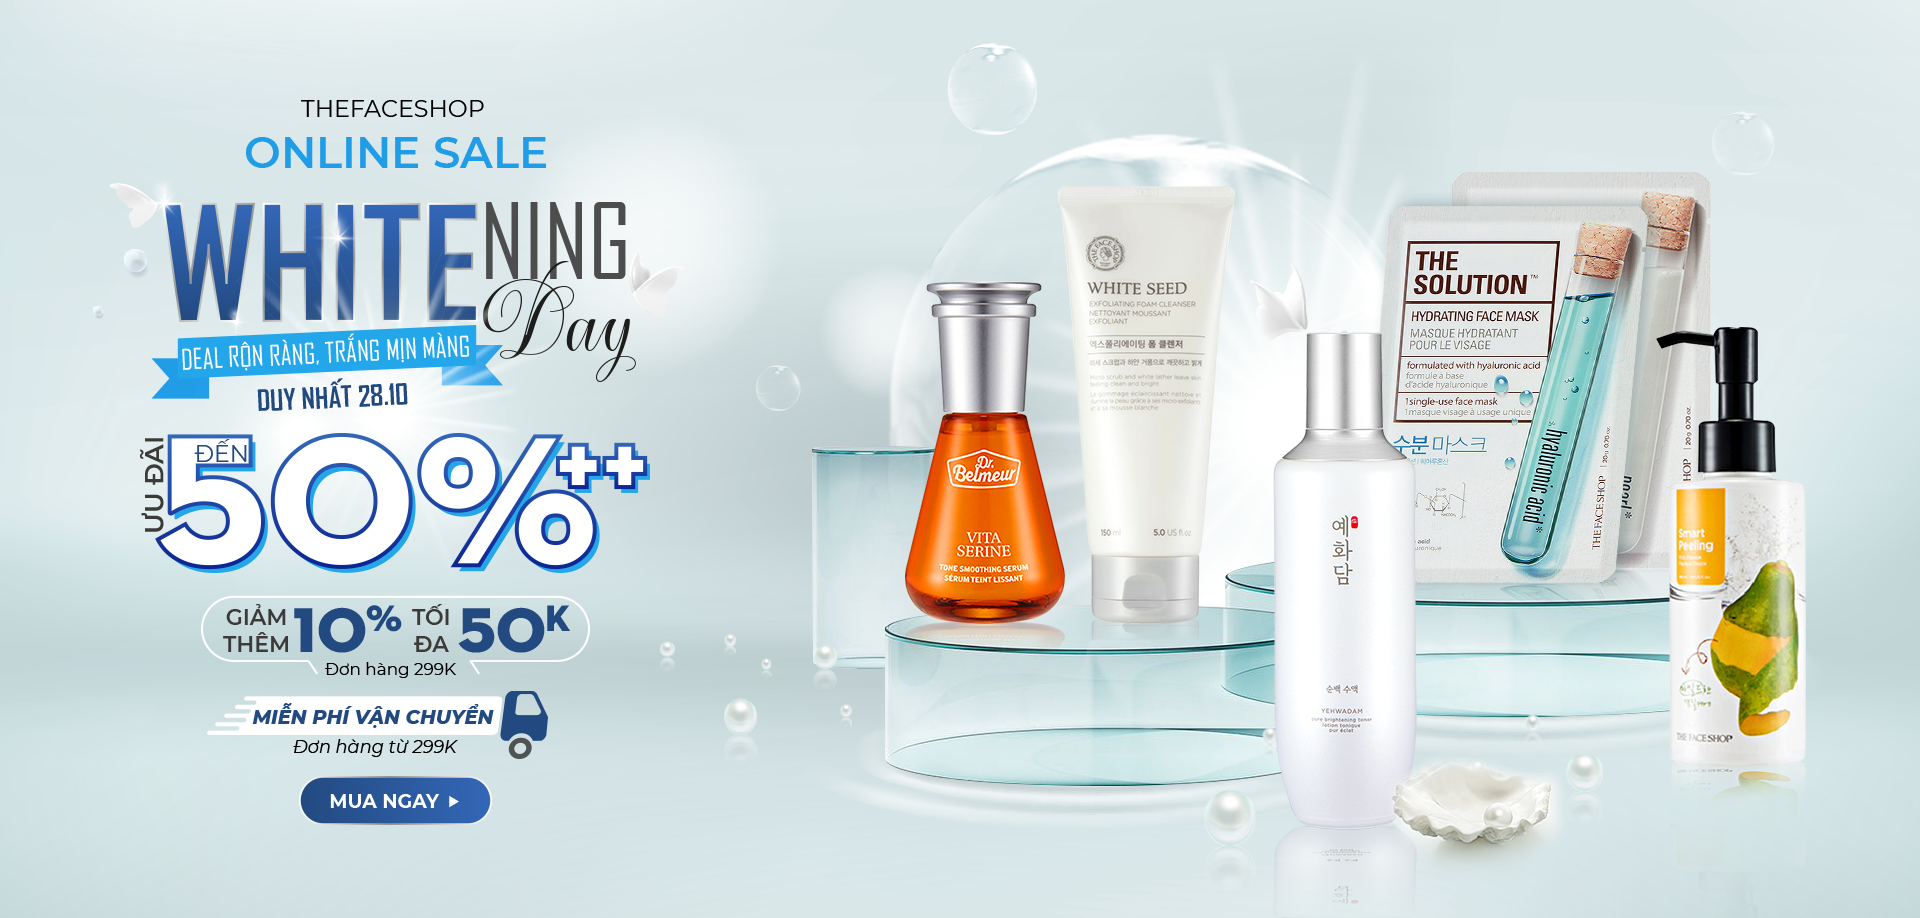 WHITENING DAY- SERUM ĐẾN 50%